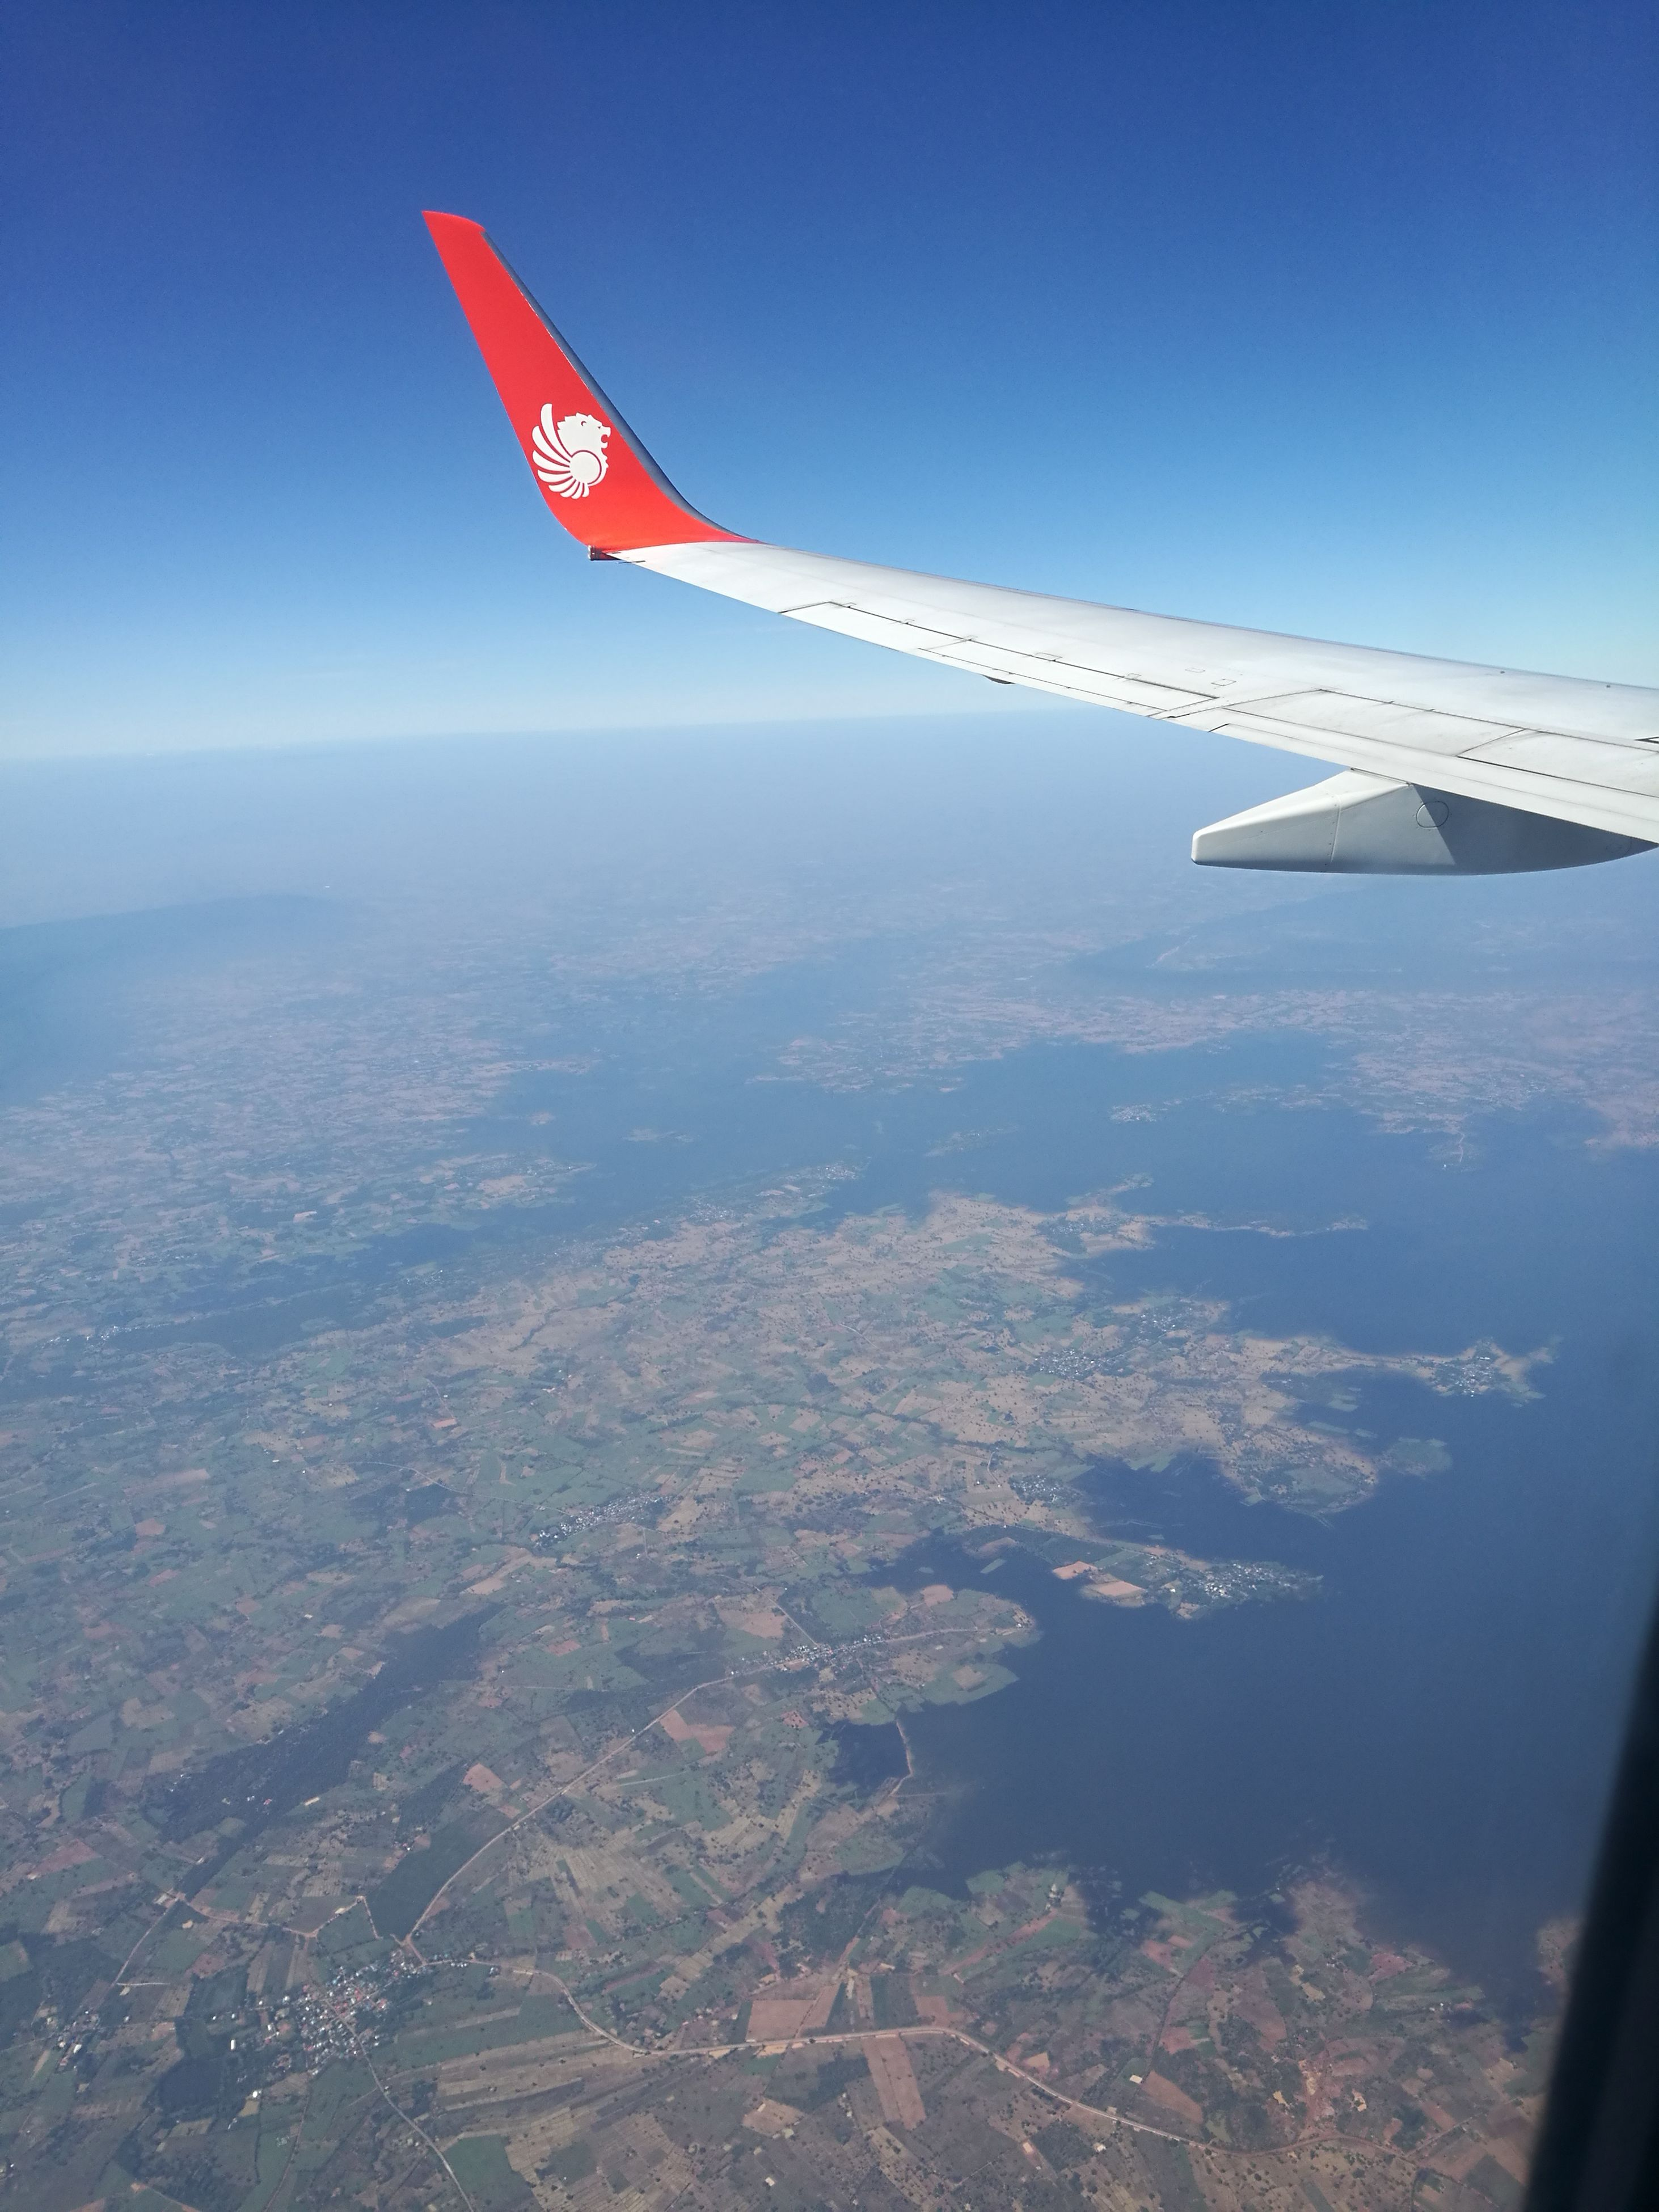 airplane, flying, transportation, aircraft wing, sky, air vehicle, no people, day, water, outdoors, nature, airplane wing